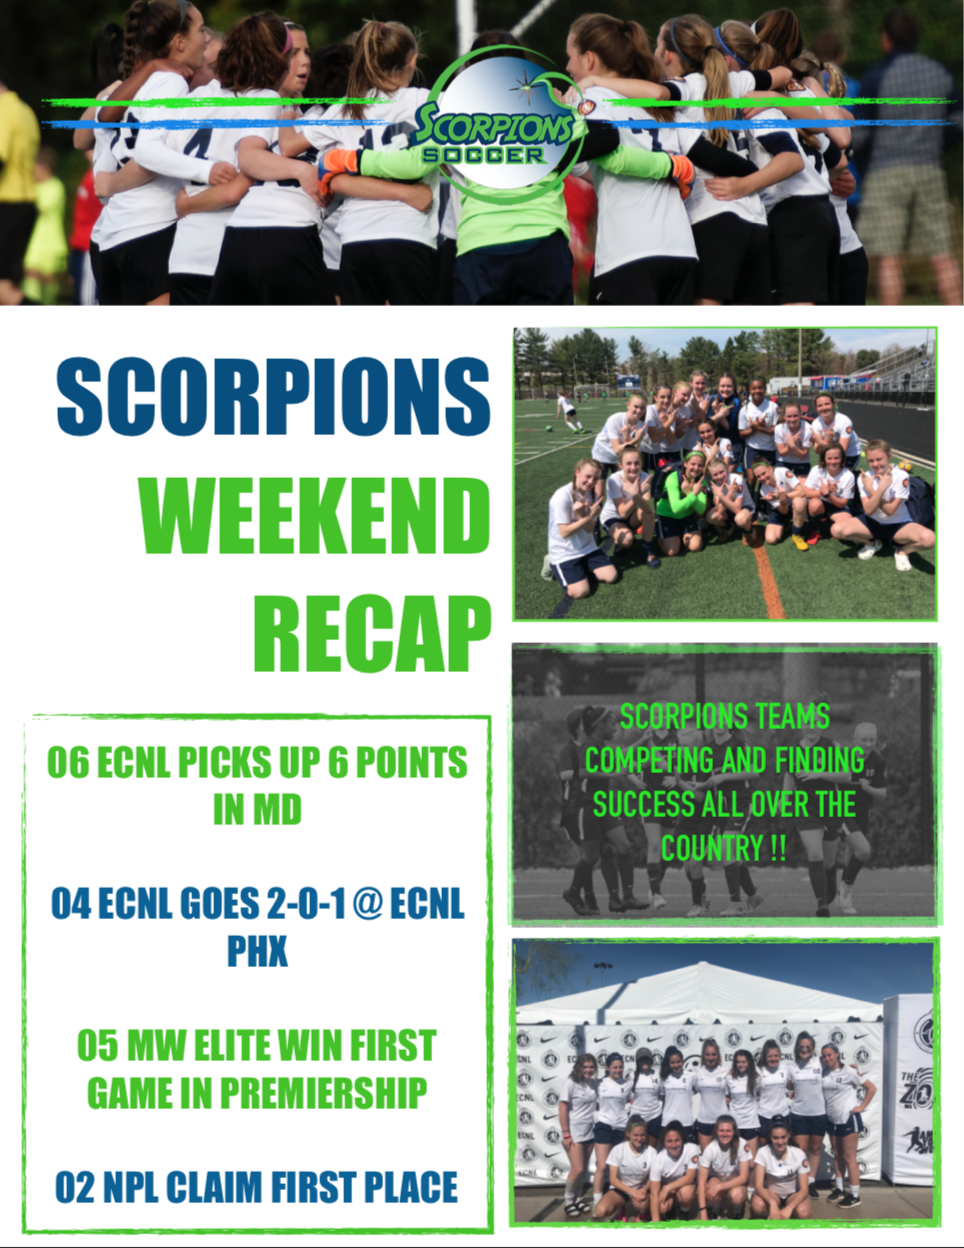 Scorpions Weekend Recap 4/6-4/7